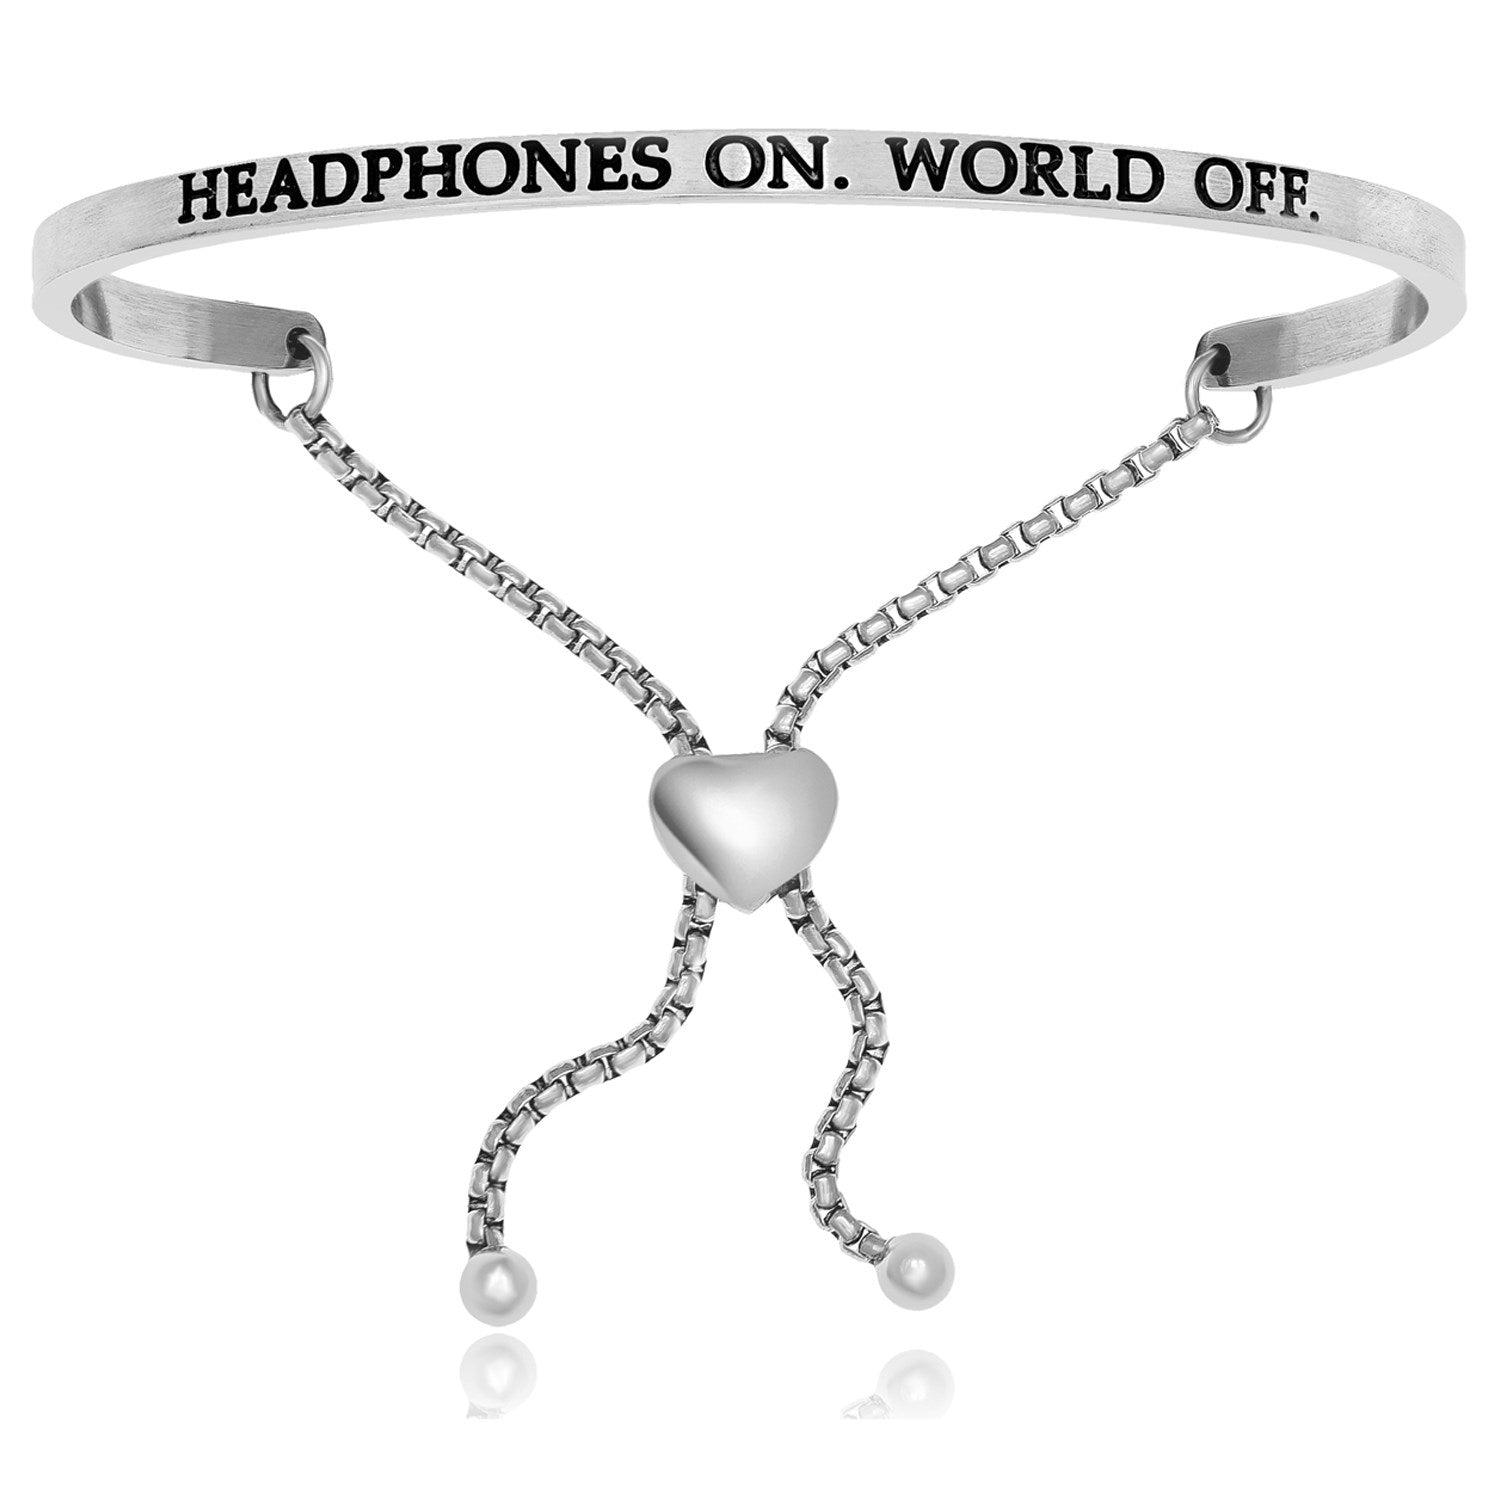 Luxury London Style Original Stainless Steel Headphones On World Off Adjustable Bracelet